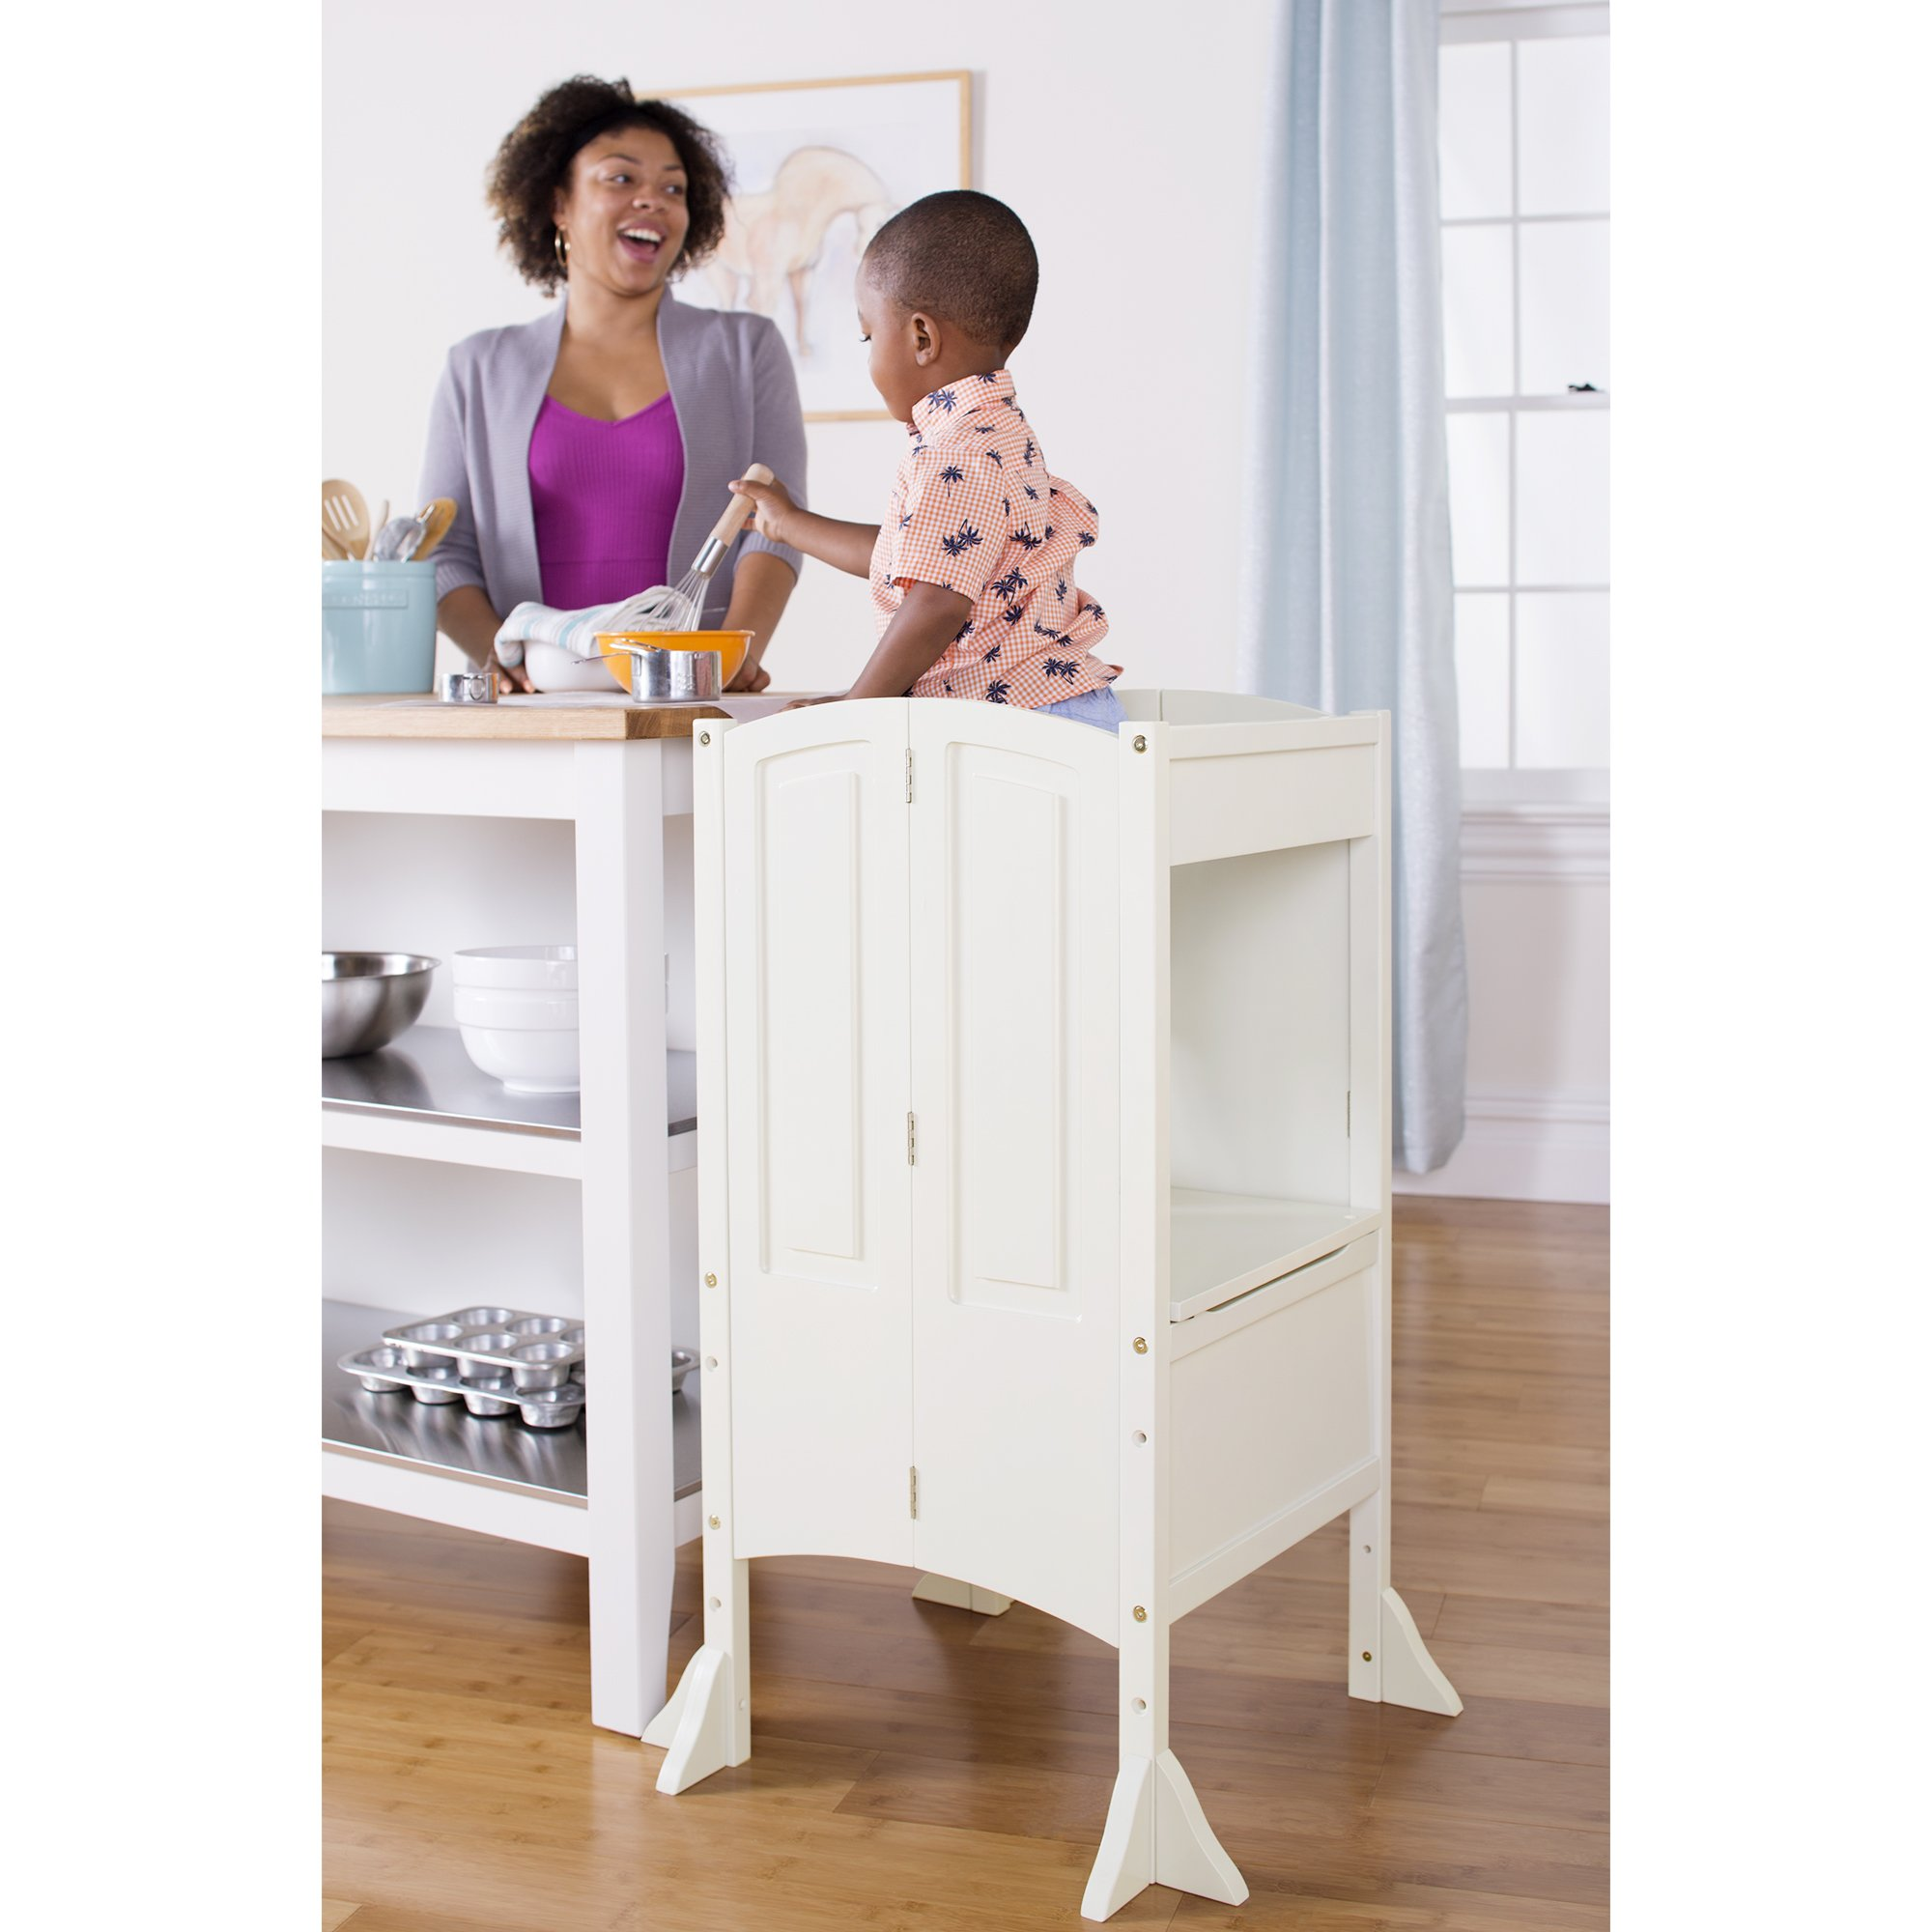 Guidecraft Heartwood Kitchen Helper - White Step Stool Adjustable Height For Toddlers, Kids Furniture